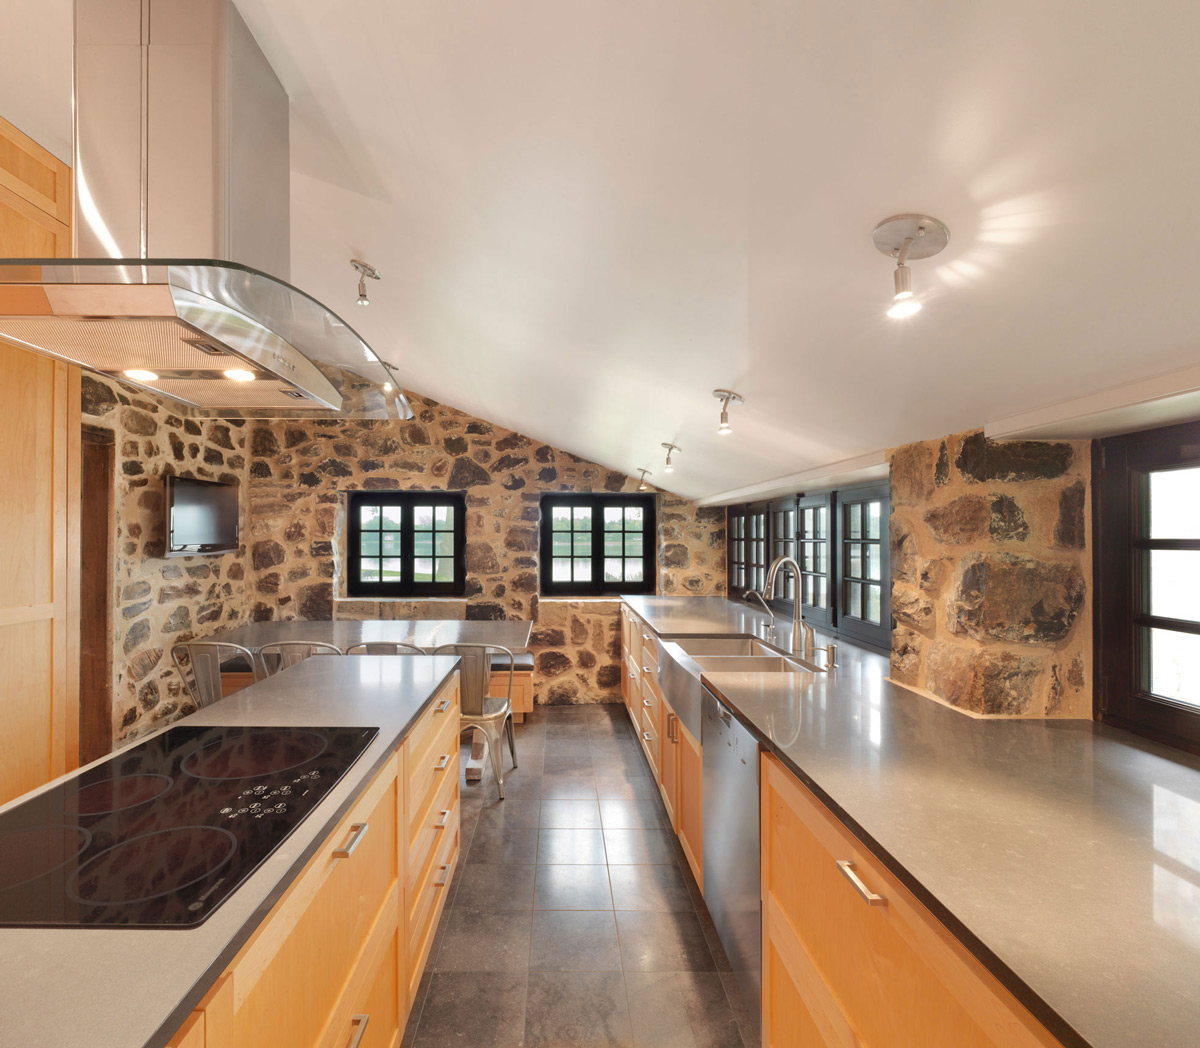 Rustic Modern Kitchen, Stone Walls, Renovation and Addition in Dorval, Canada